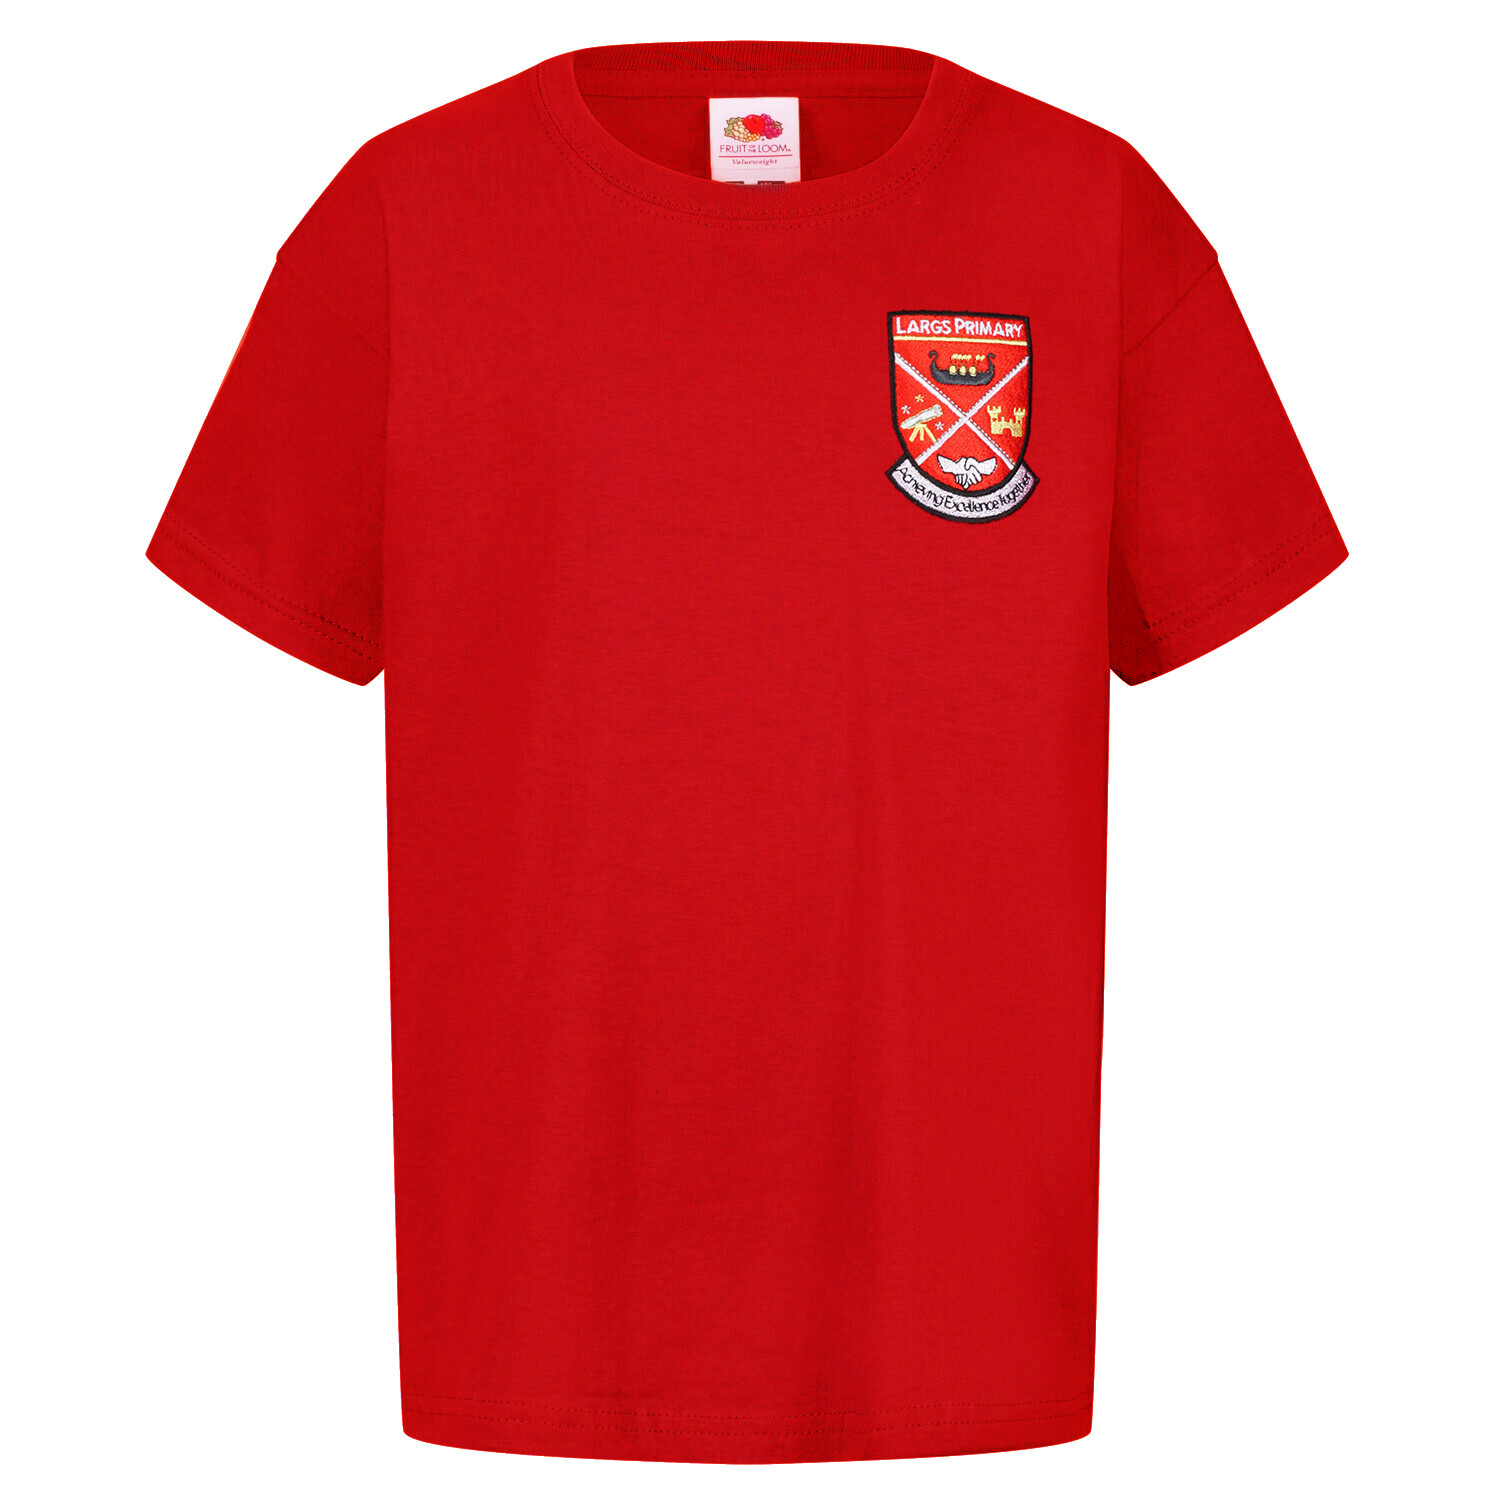 Largs Primary Staff T-Shirt (Unisex) (RCS5000)